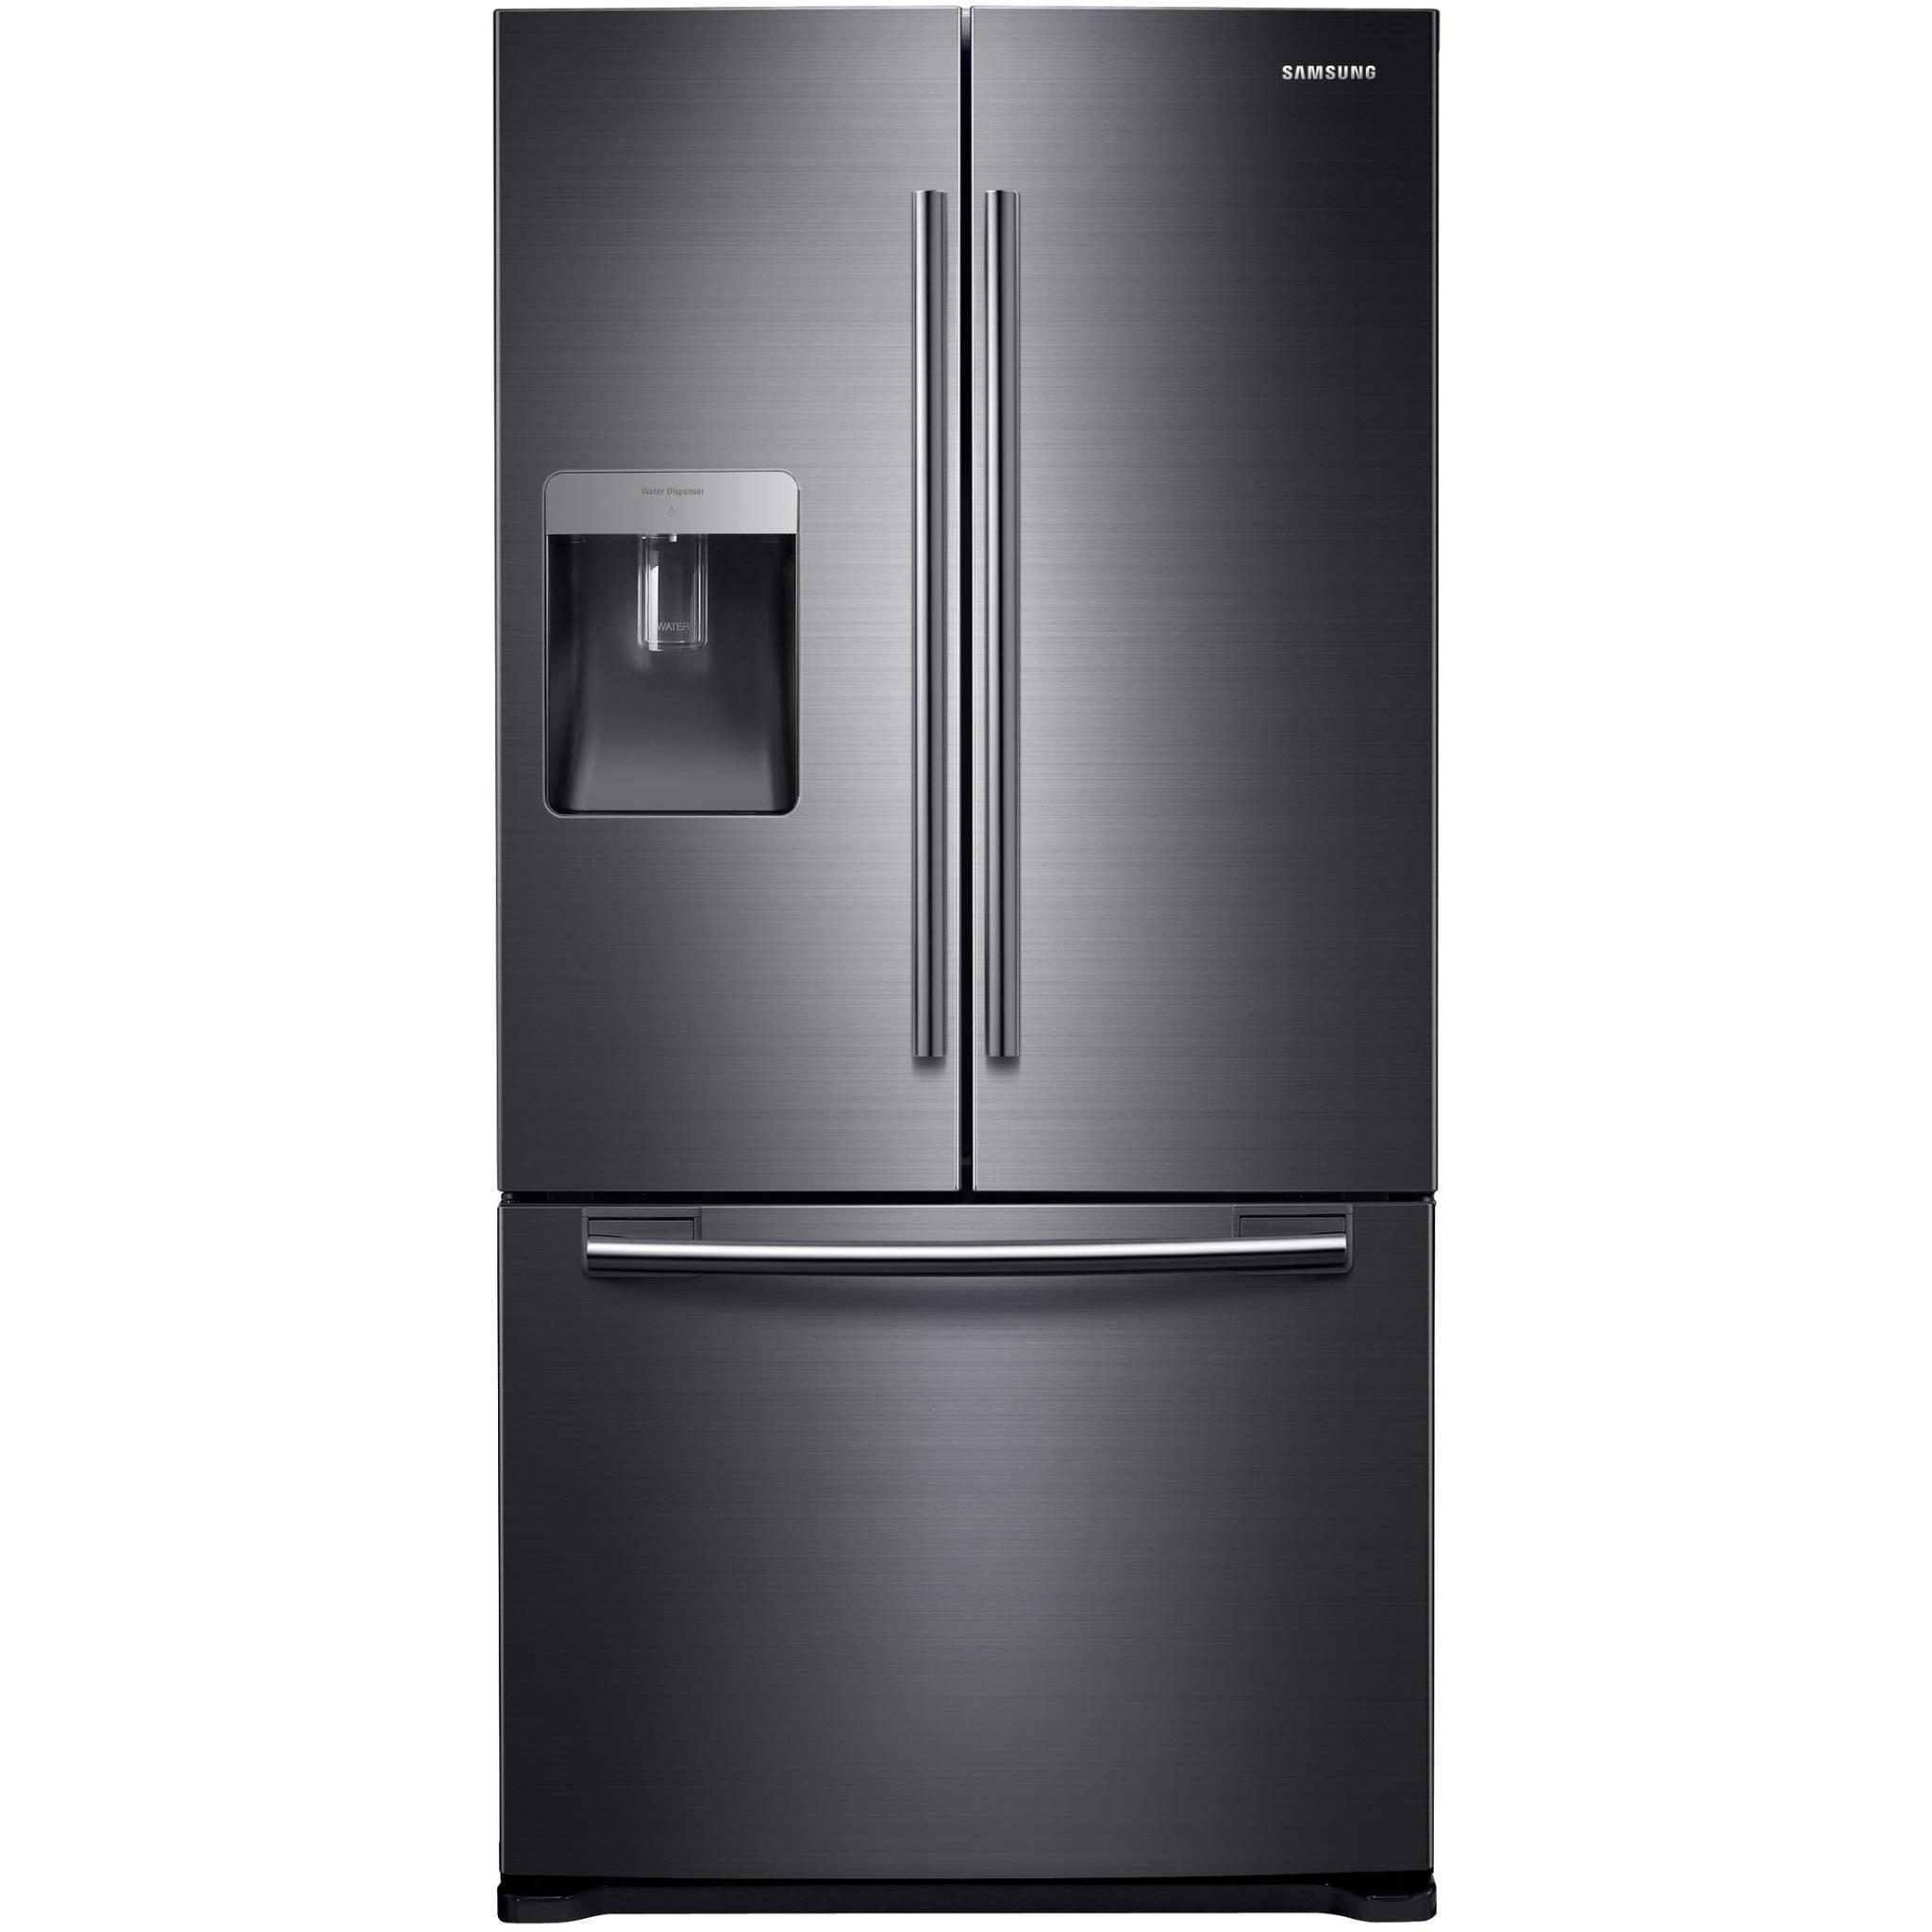 Samsung SRF582DBLS 583L French Door Fridge (Black Steel)